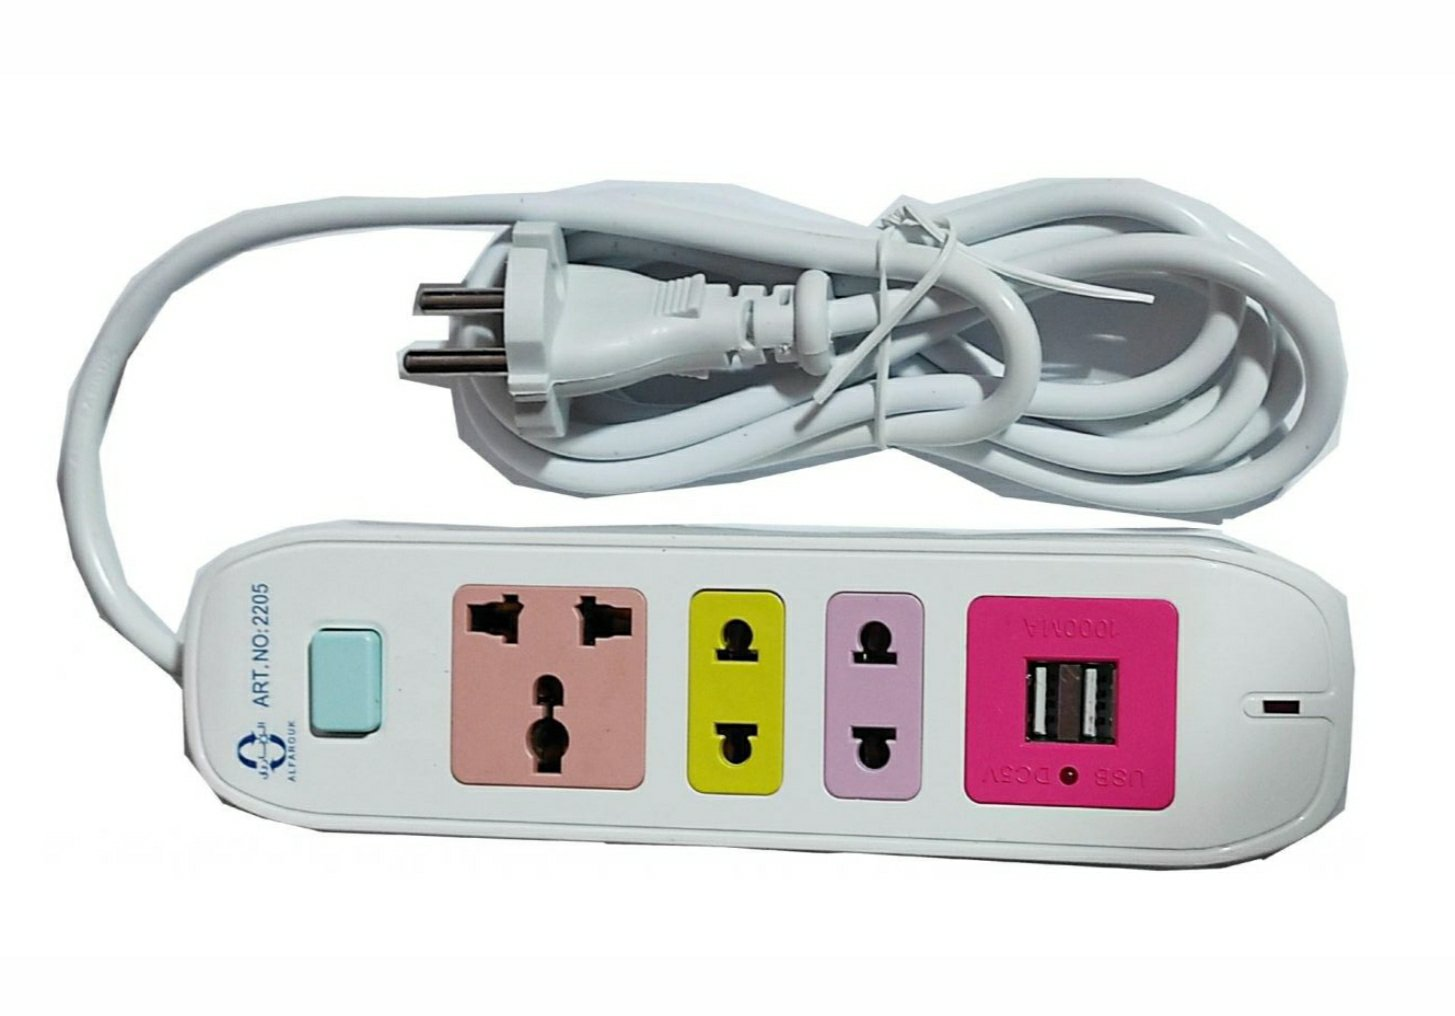 Multi-USB/Plug power hub